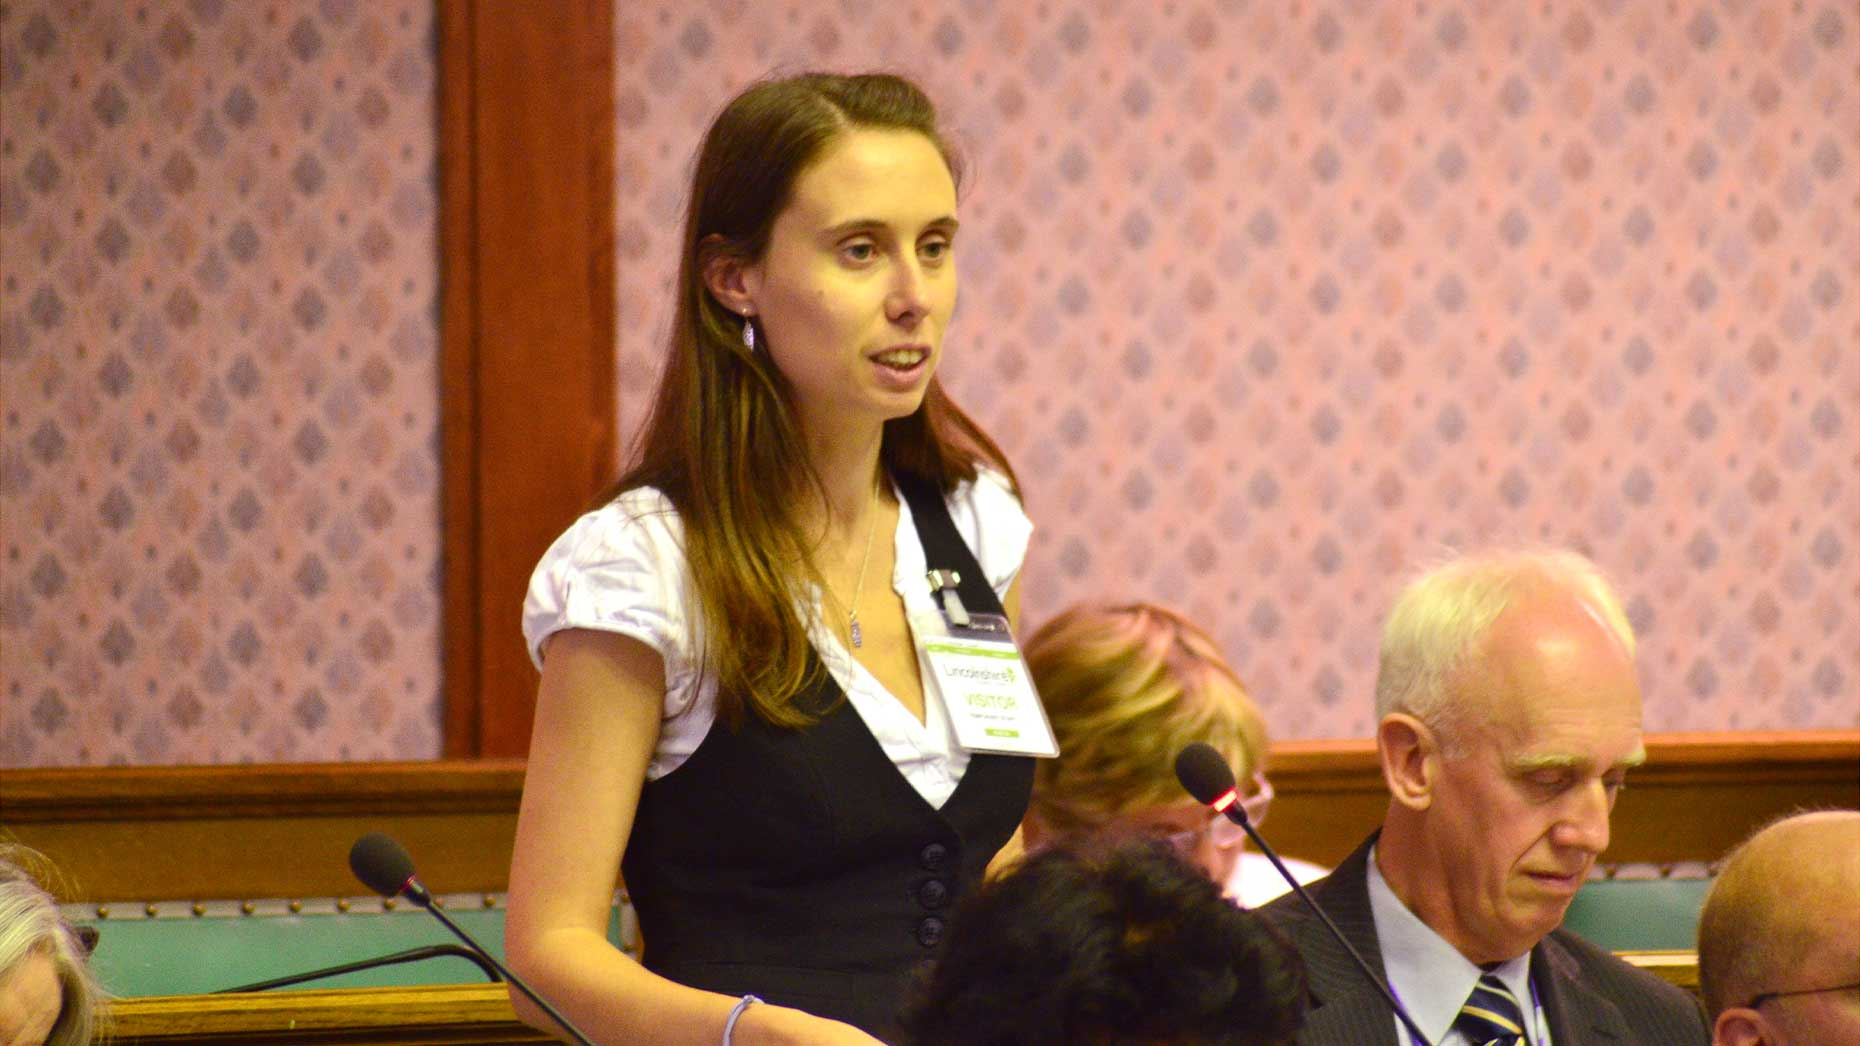 Pivotal SLL campaigner Leah Warriner-Wood held a speech during the council meeting. Photo: Steve Smailes for The Lincolnite